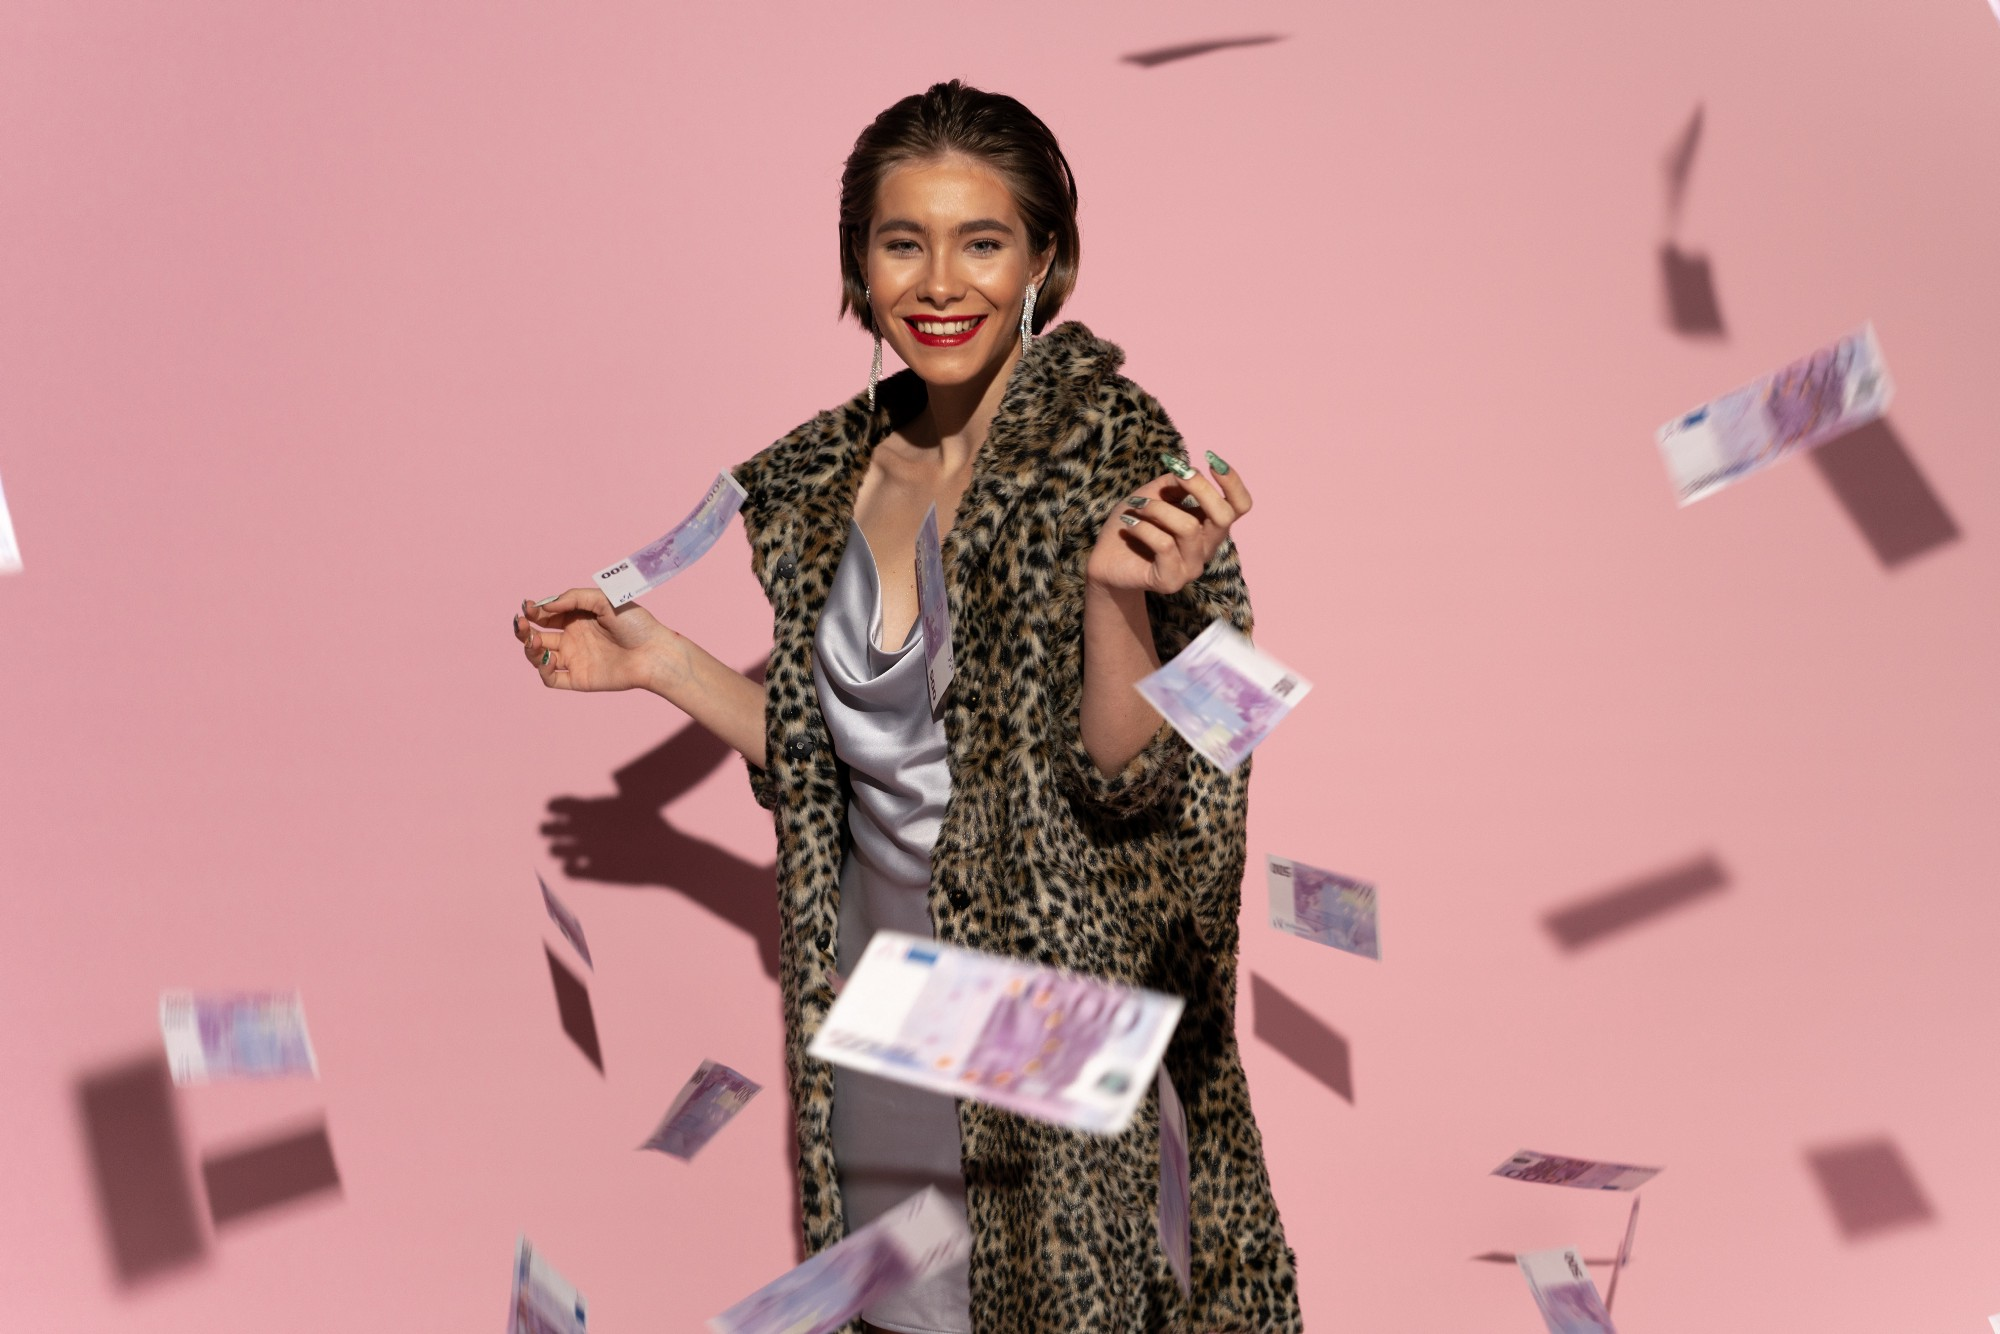 Women wear an expensive brown jacket and she is surrounded by money. She looks happy and looks at the camera.